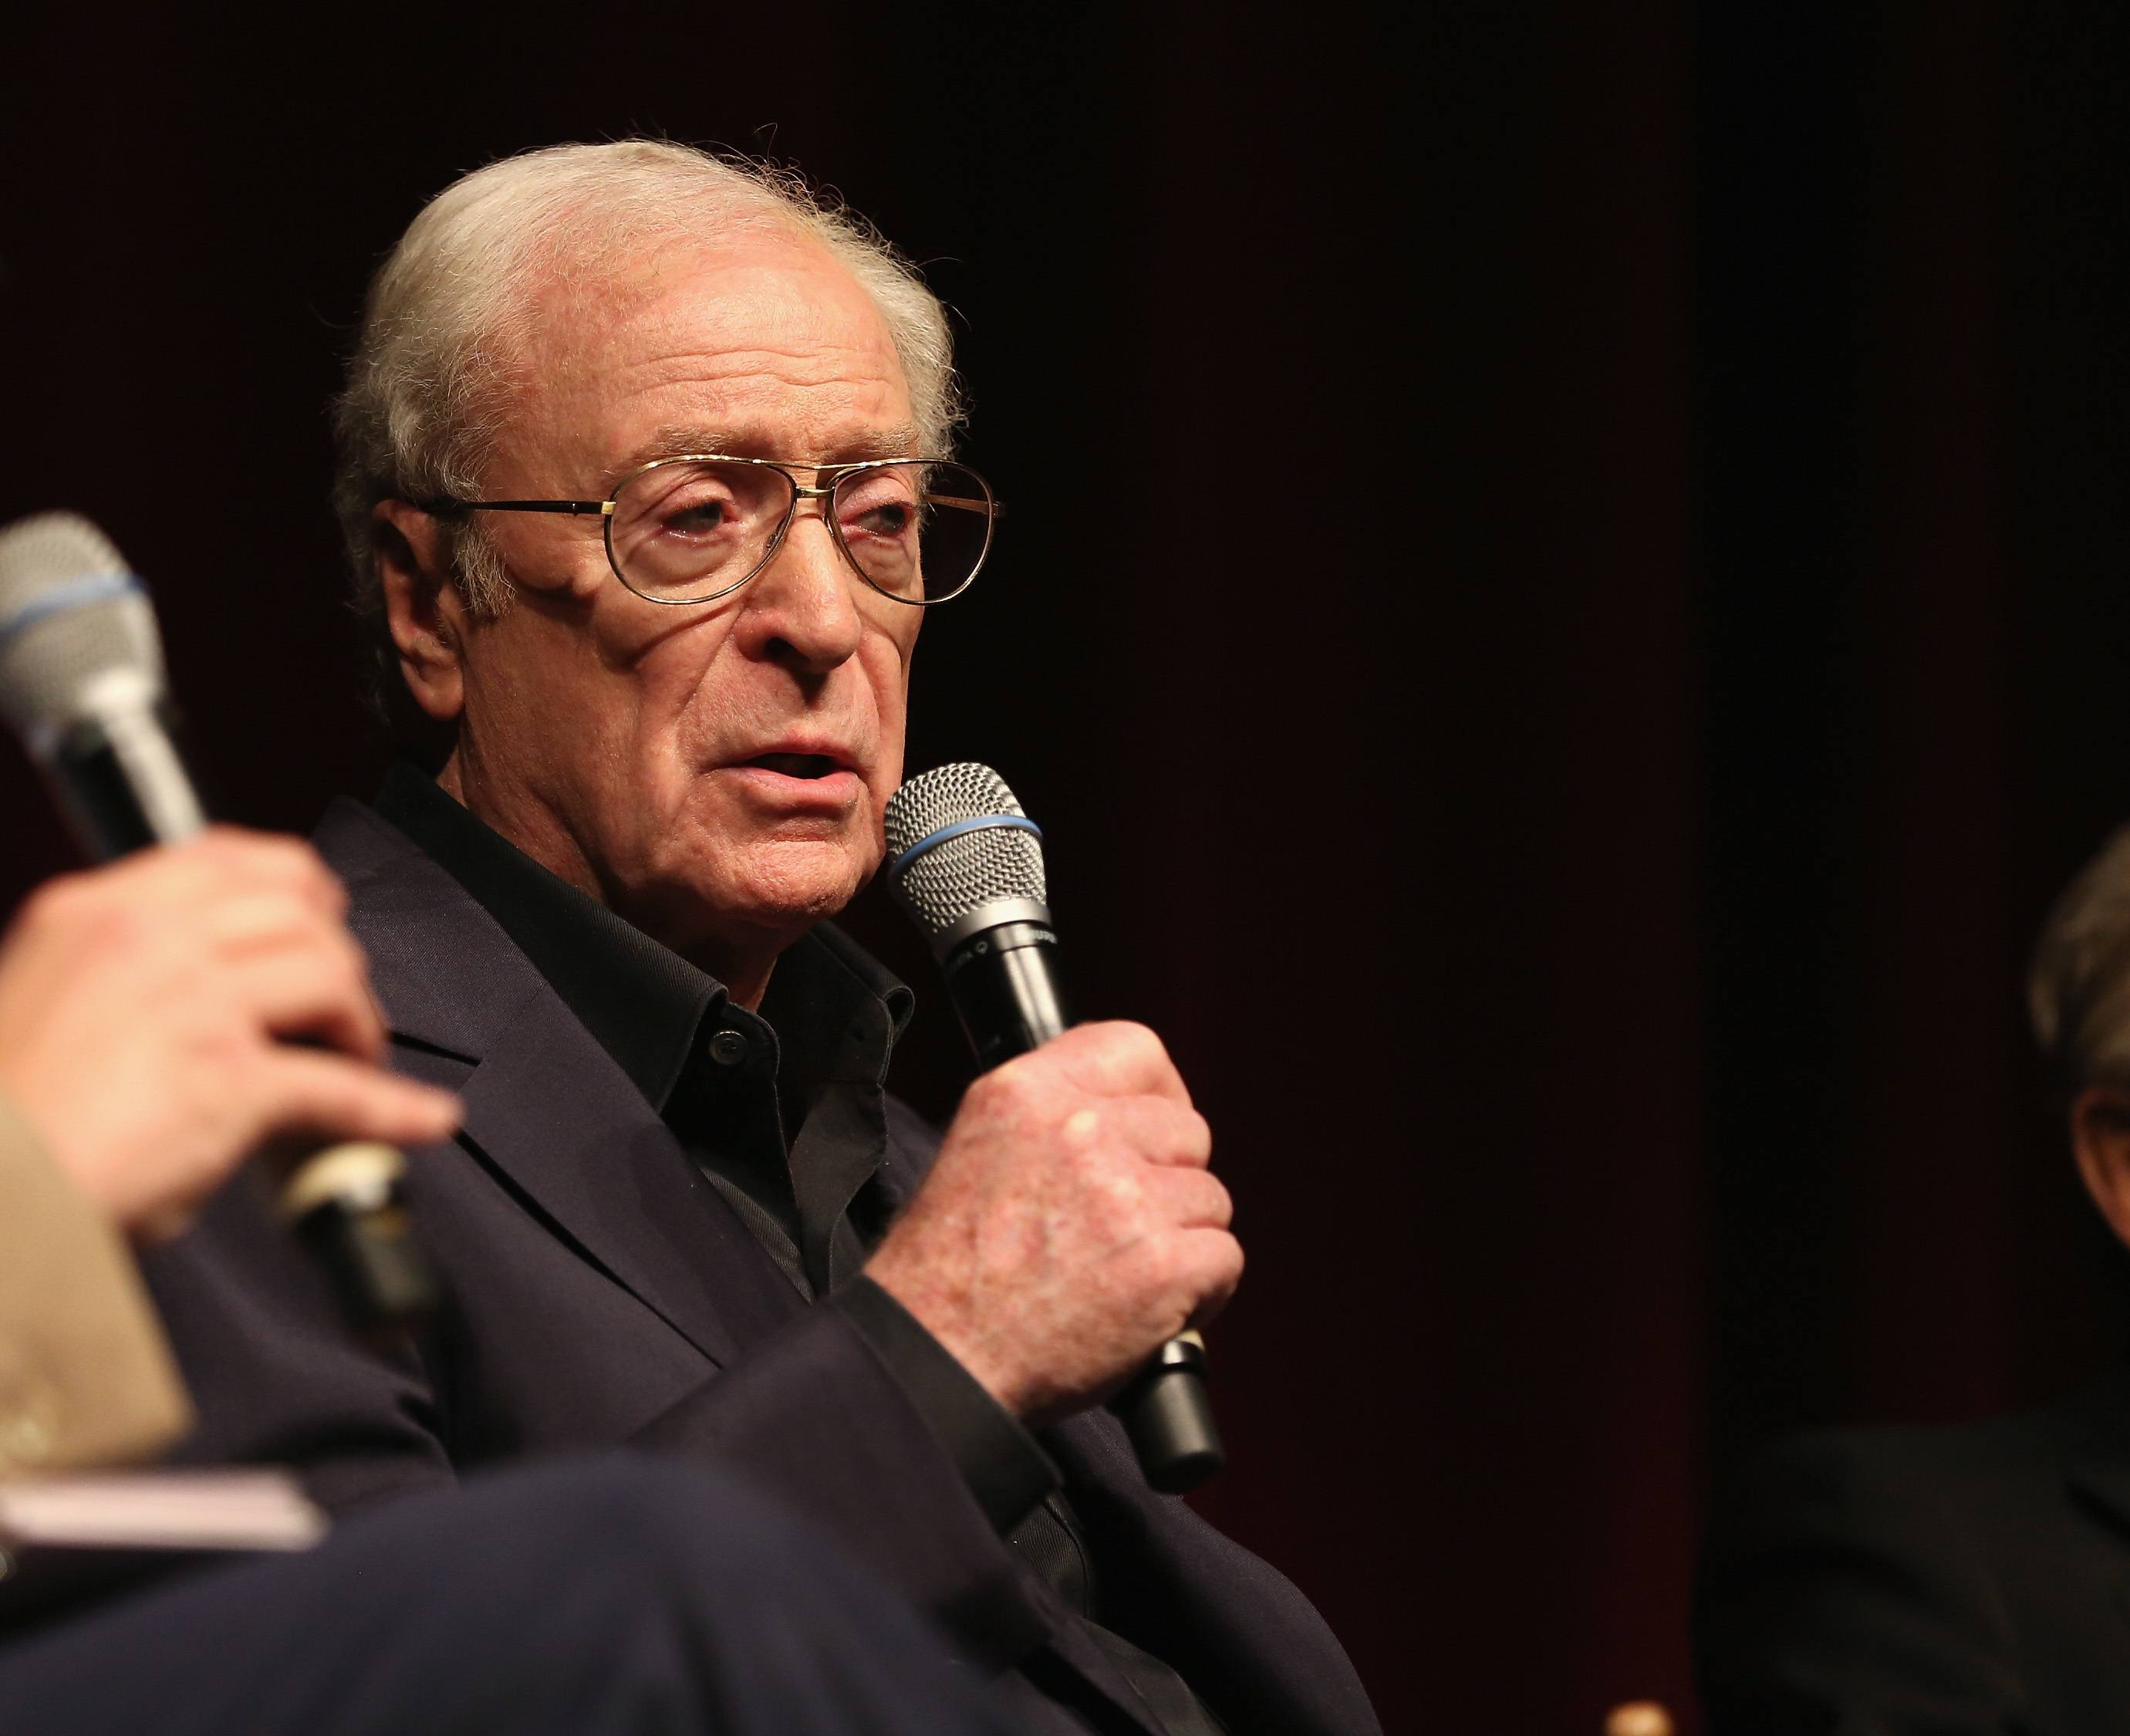 Michael Caine | Robin Marchant/Getty Images